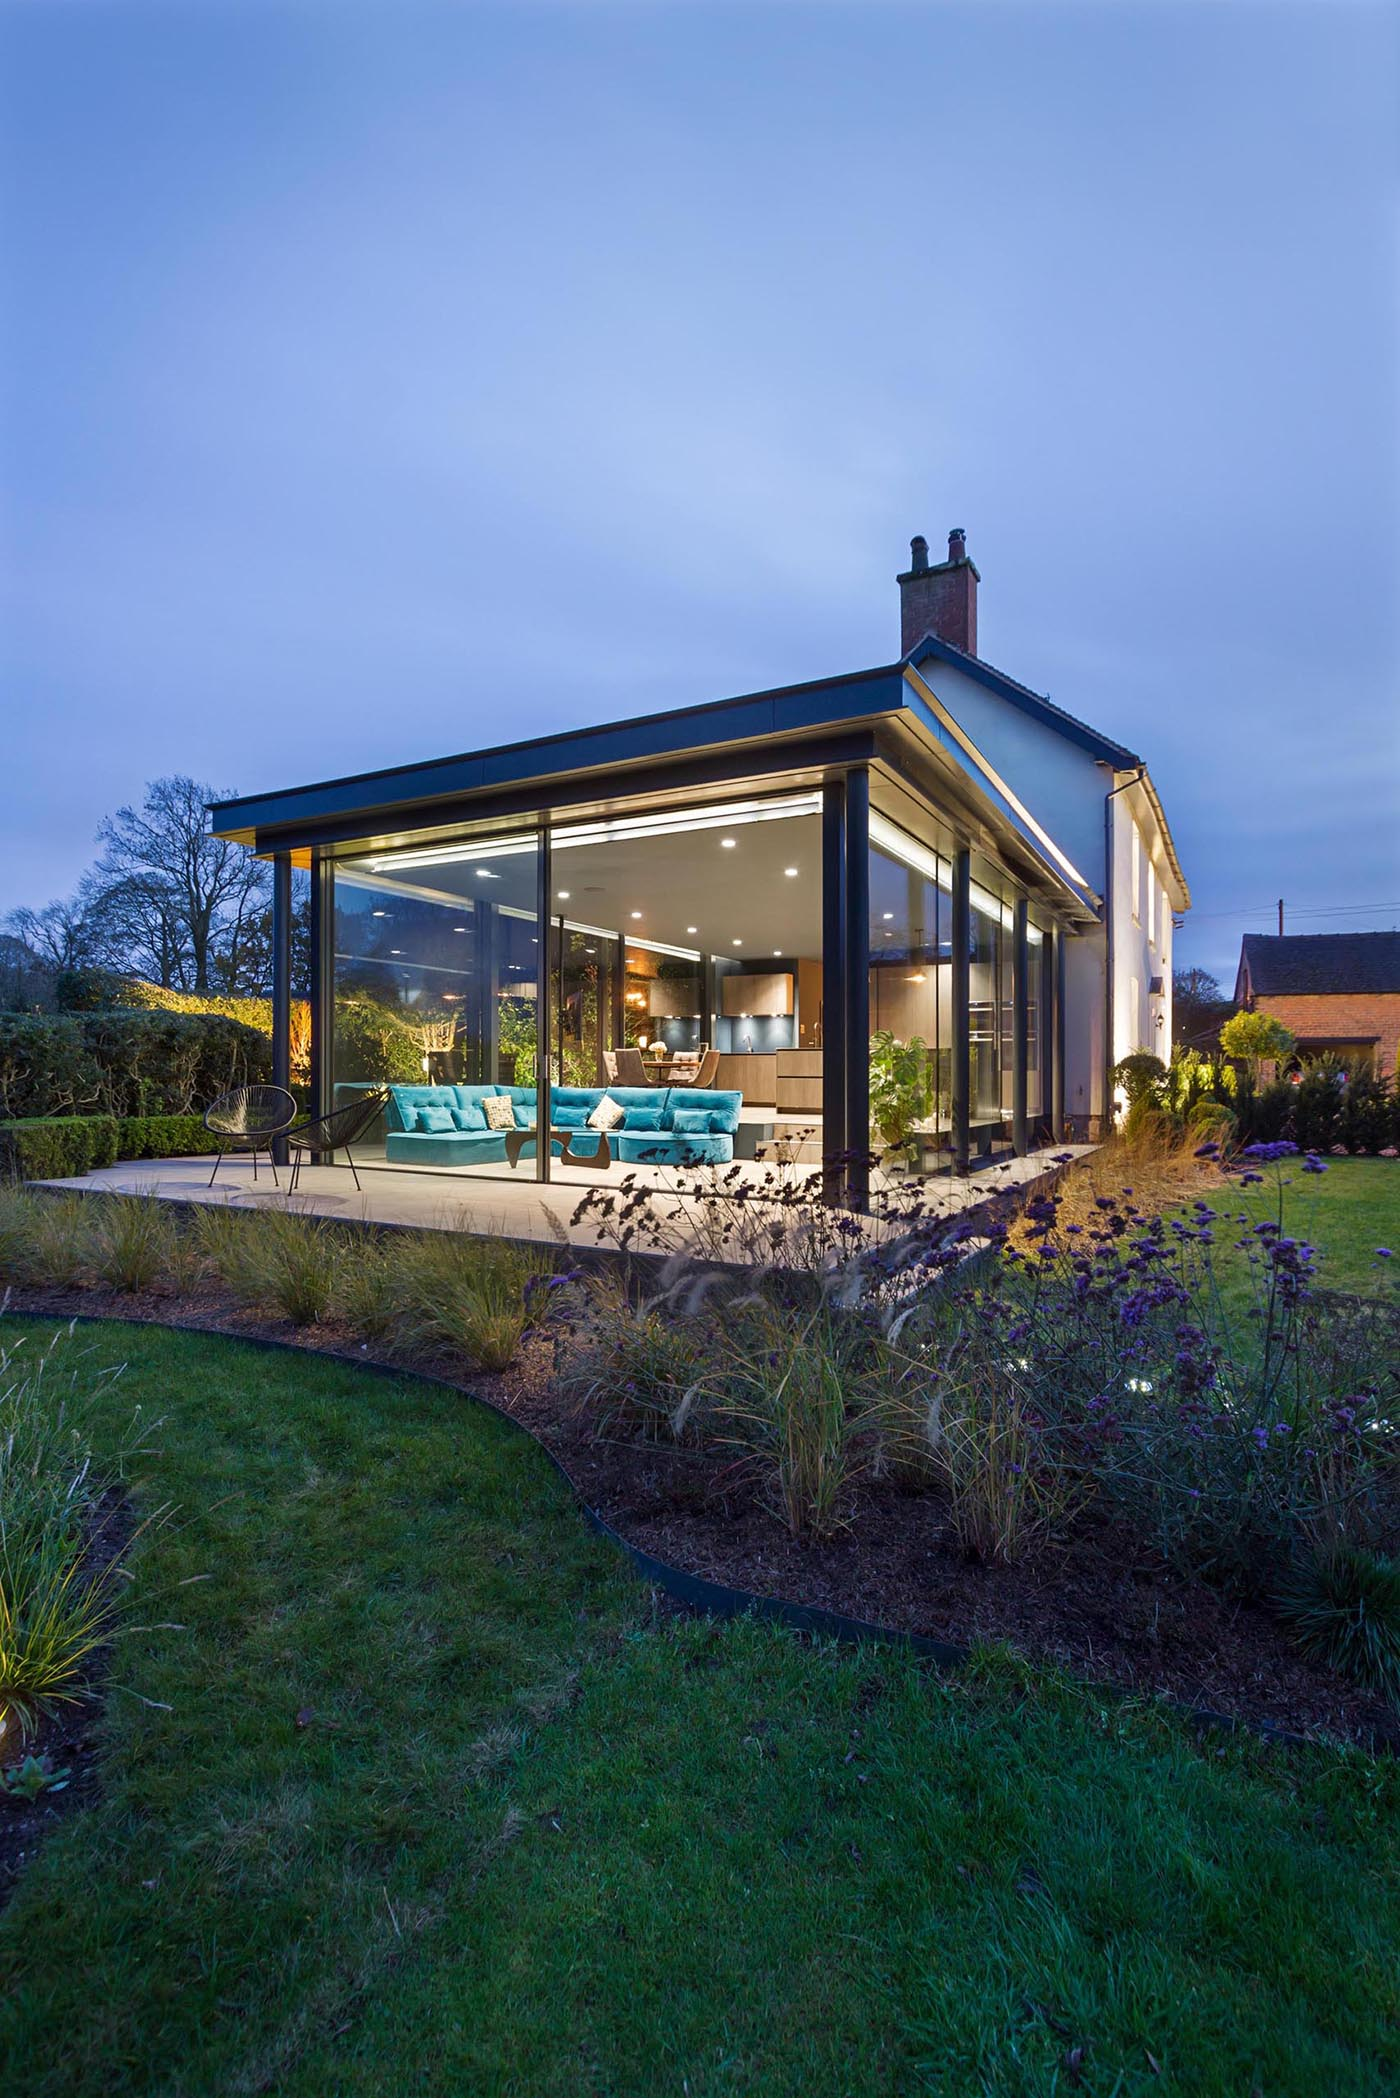 A modern extension with glass walls was added to a heritage home in England.